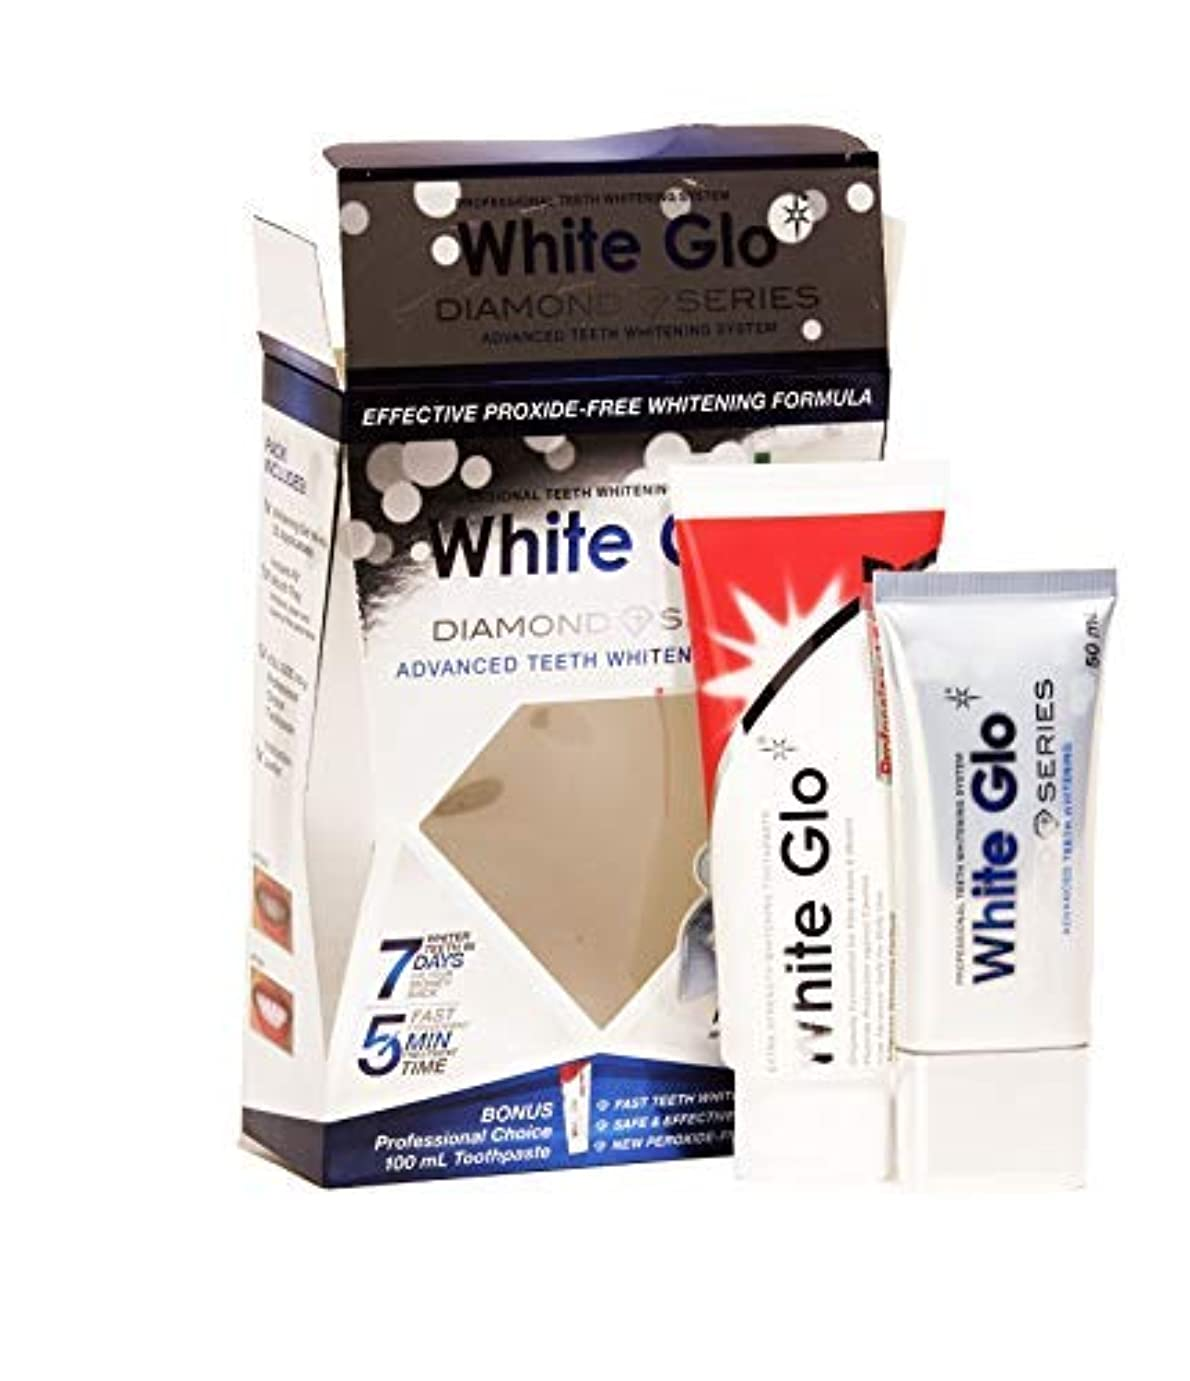 夜の動物園抜け目のないあまりにもTeeth Whitening Systems White Glo White Glo Diamond Series Bleaching Set Gel & Paste 50ml + 100ml Australia /...